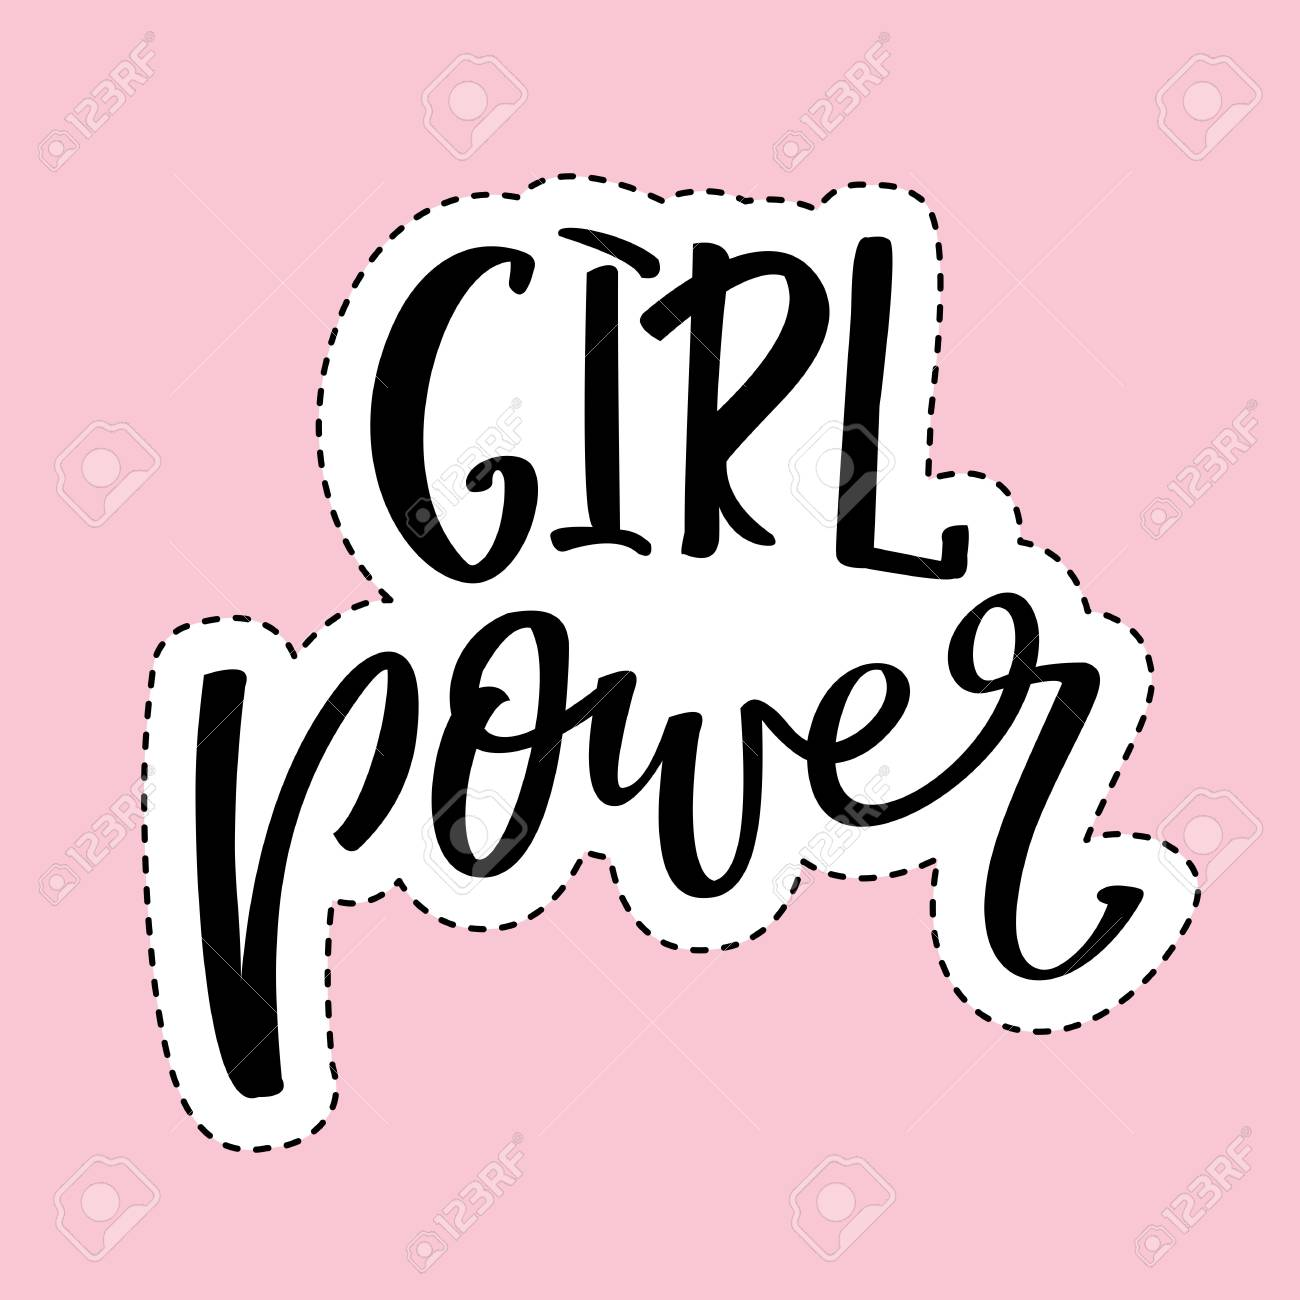 girl power inspirational quote feminism quote hand lettering